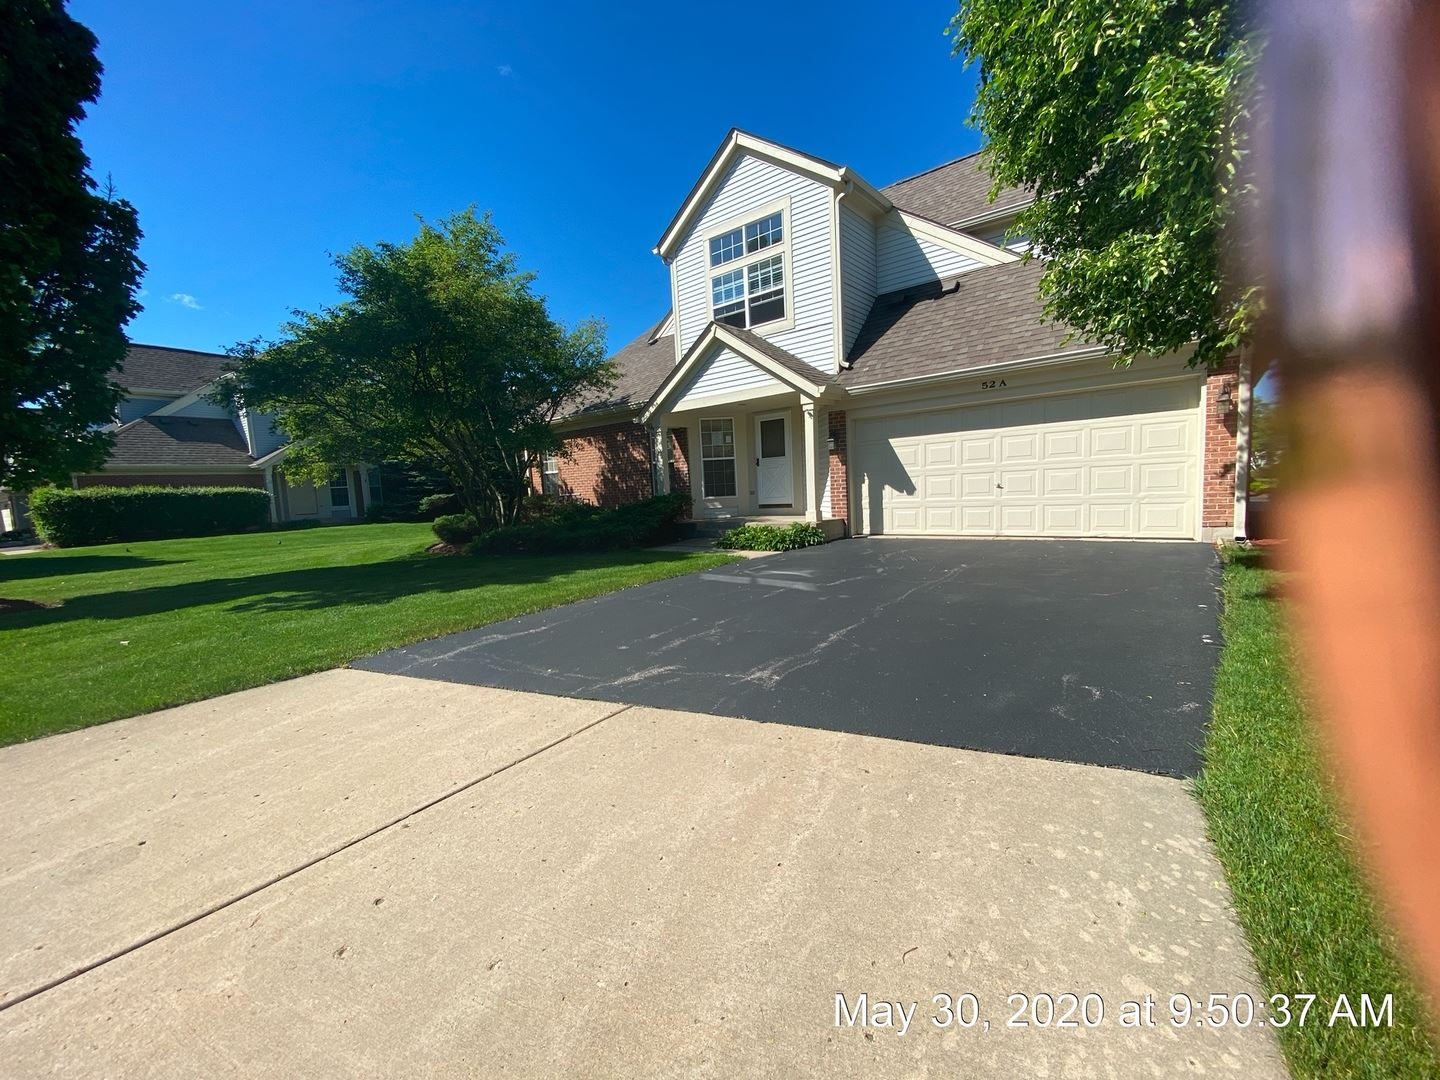 52 Ione Drive #A, South Elgin, IL 60177 - #: 10594970